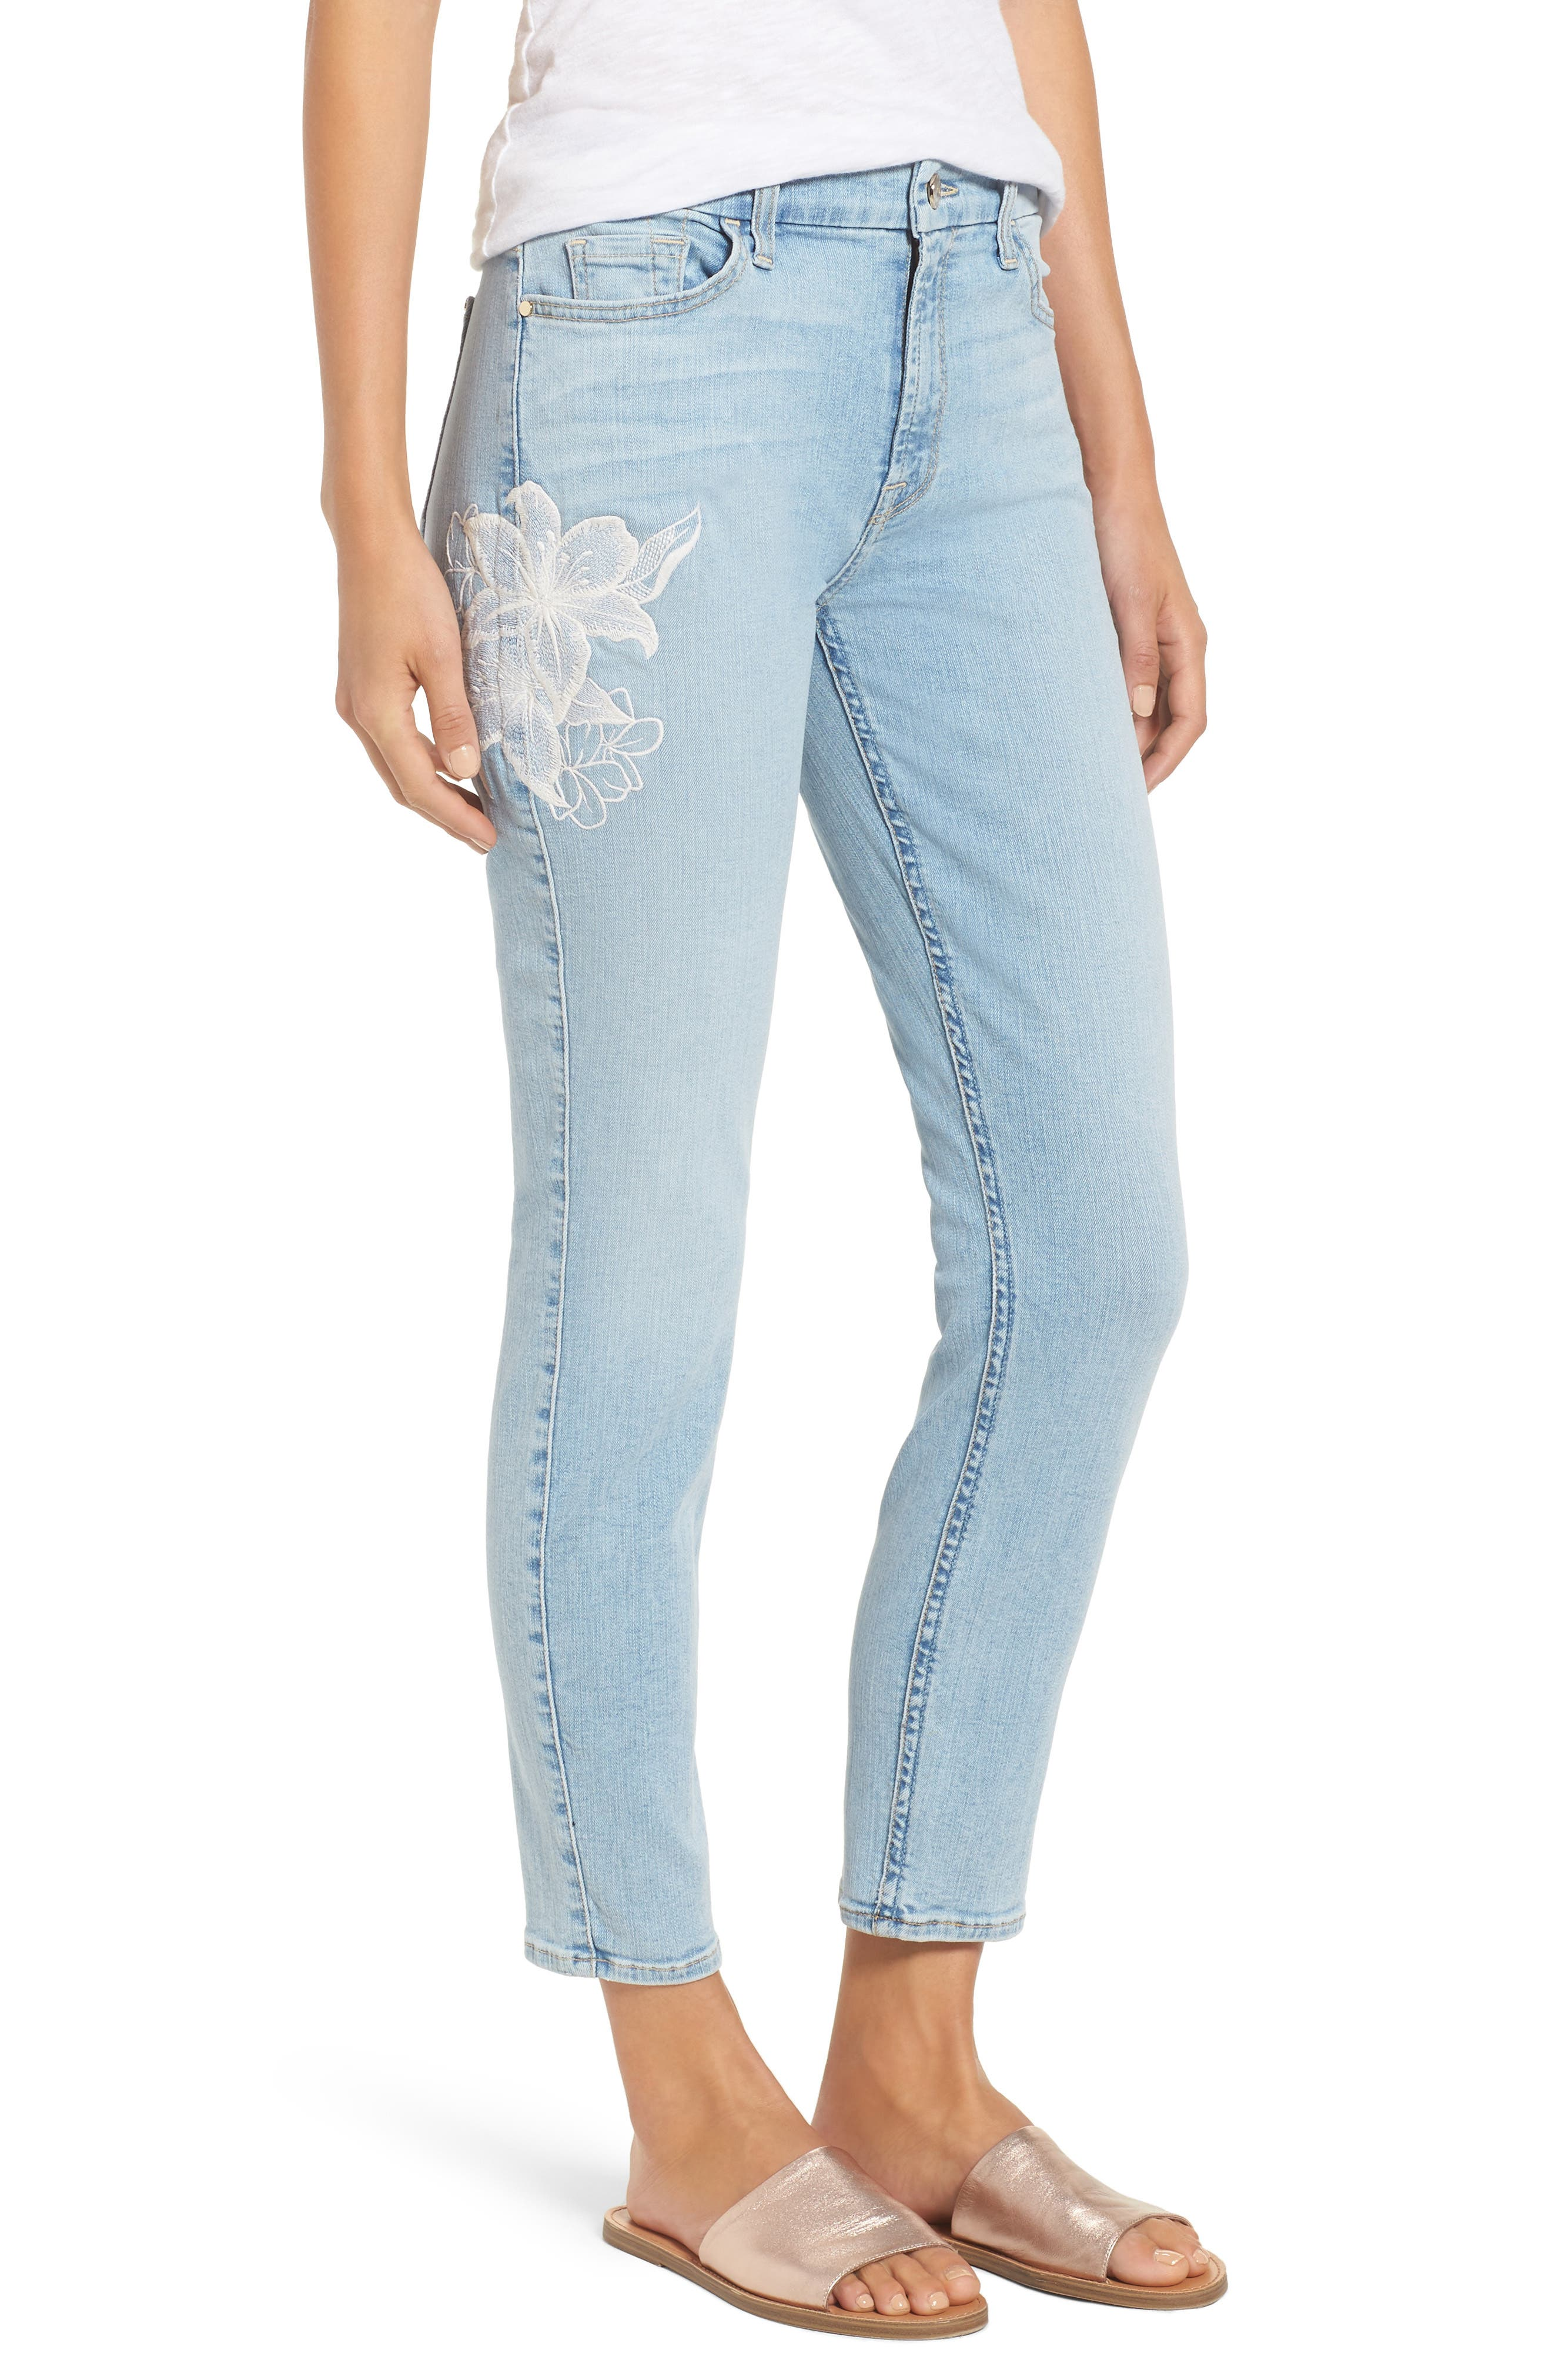 JEN7 BY 7 FOR ALL MANKIND Embroidered Stretch Ankle Skinny Jeans, Main, color, RICHE TOUCH PLAYA VISTA